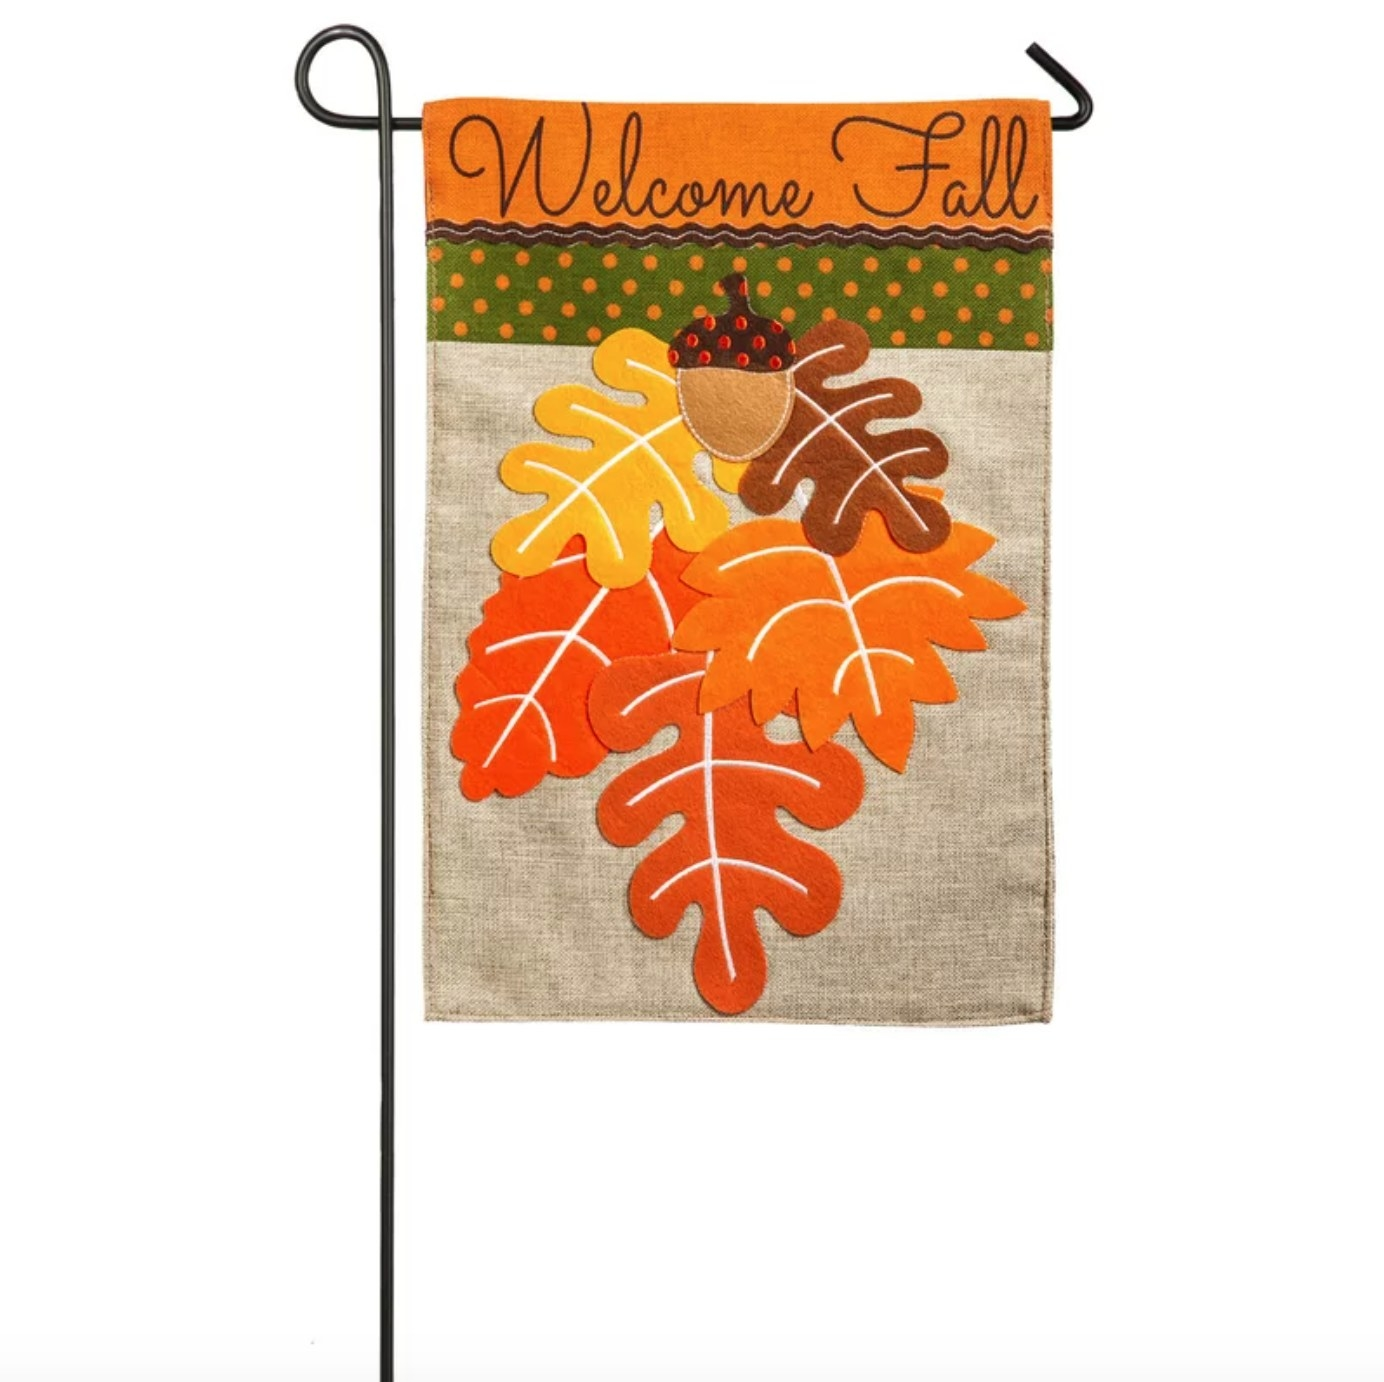 The garden flag featuring fall colored leaves and a welcome fall script